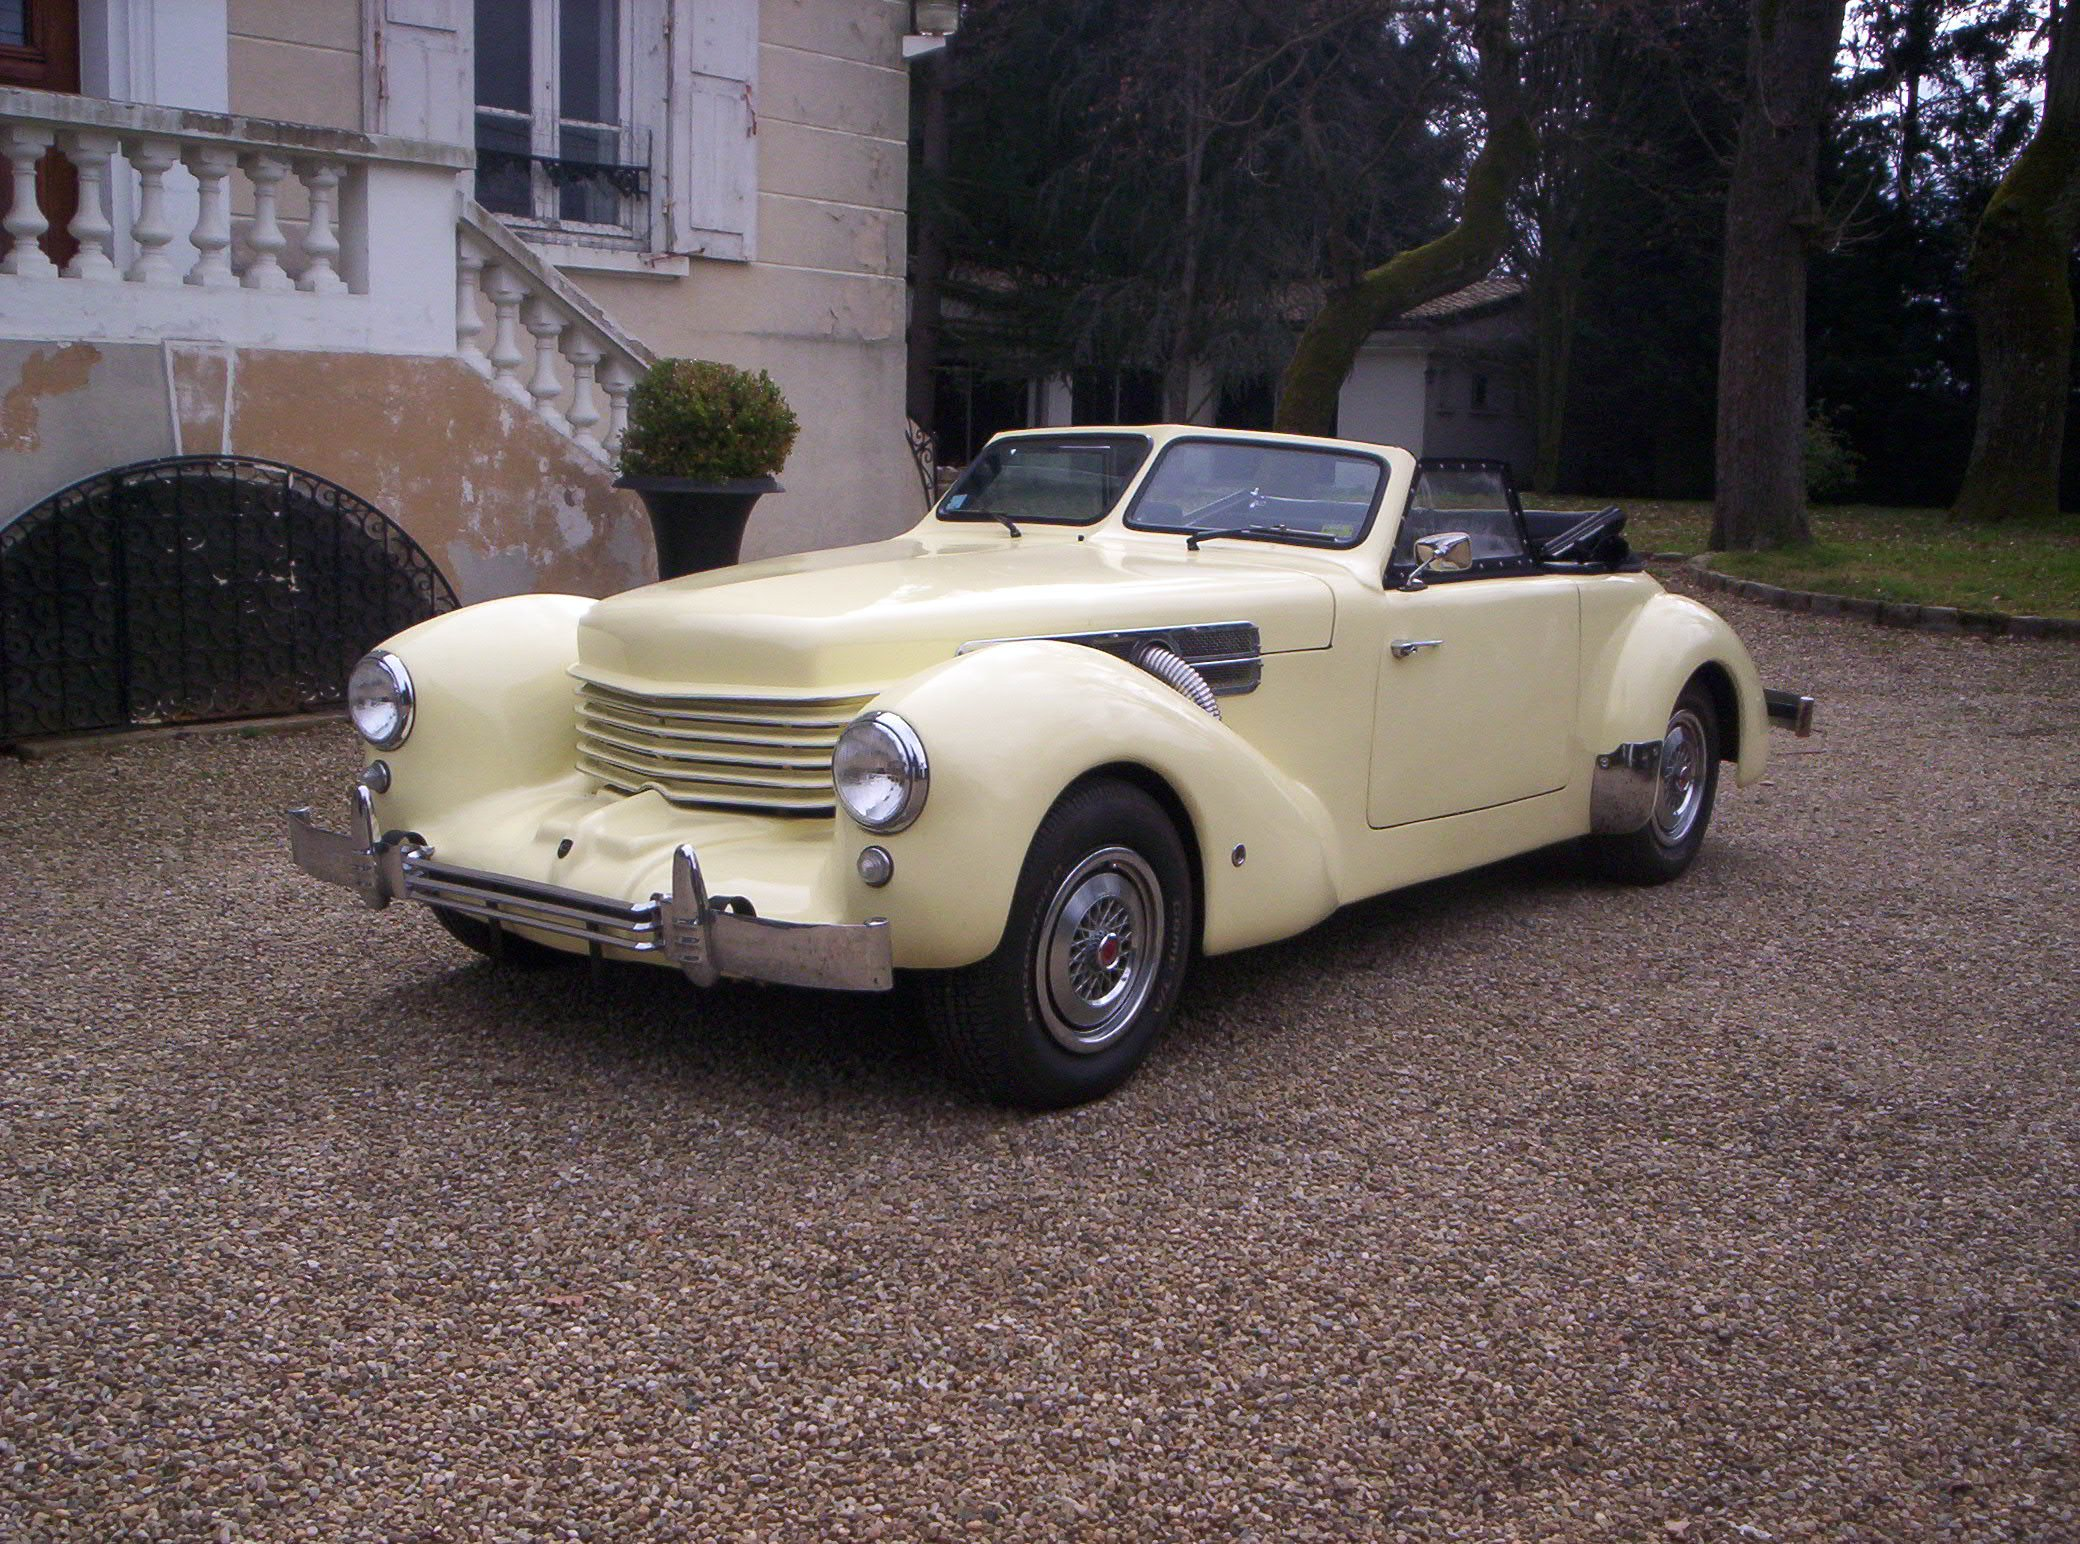 1968 Cord Warrior - Owner Herve Llucia - Lyons, France